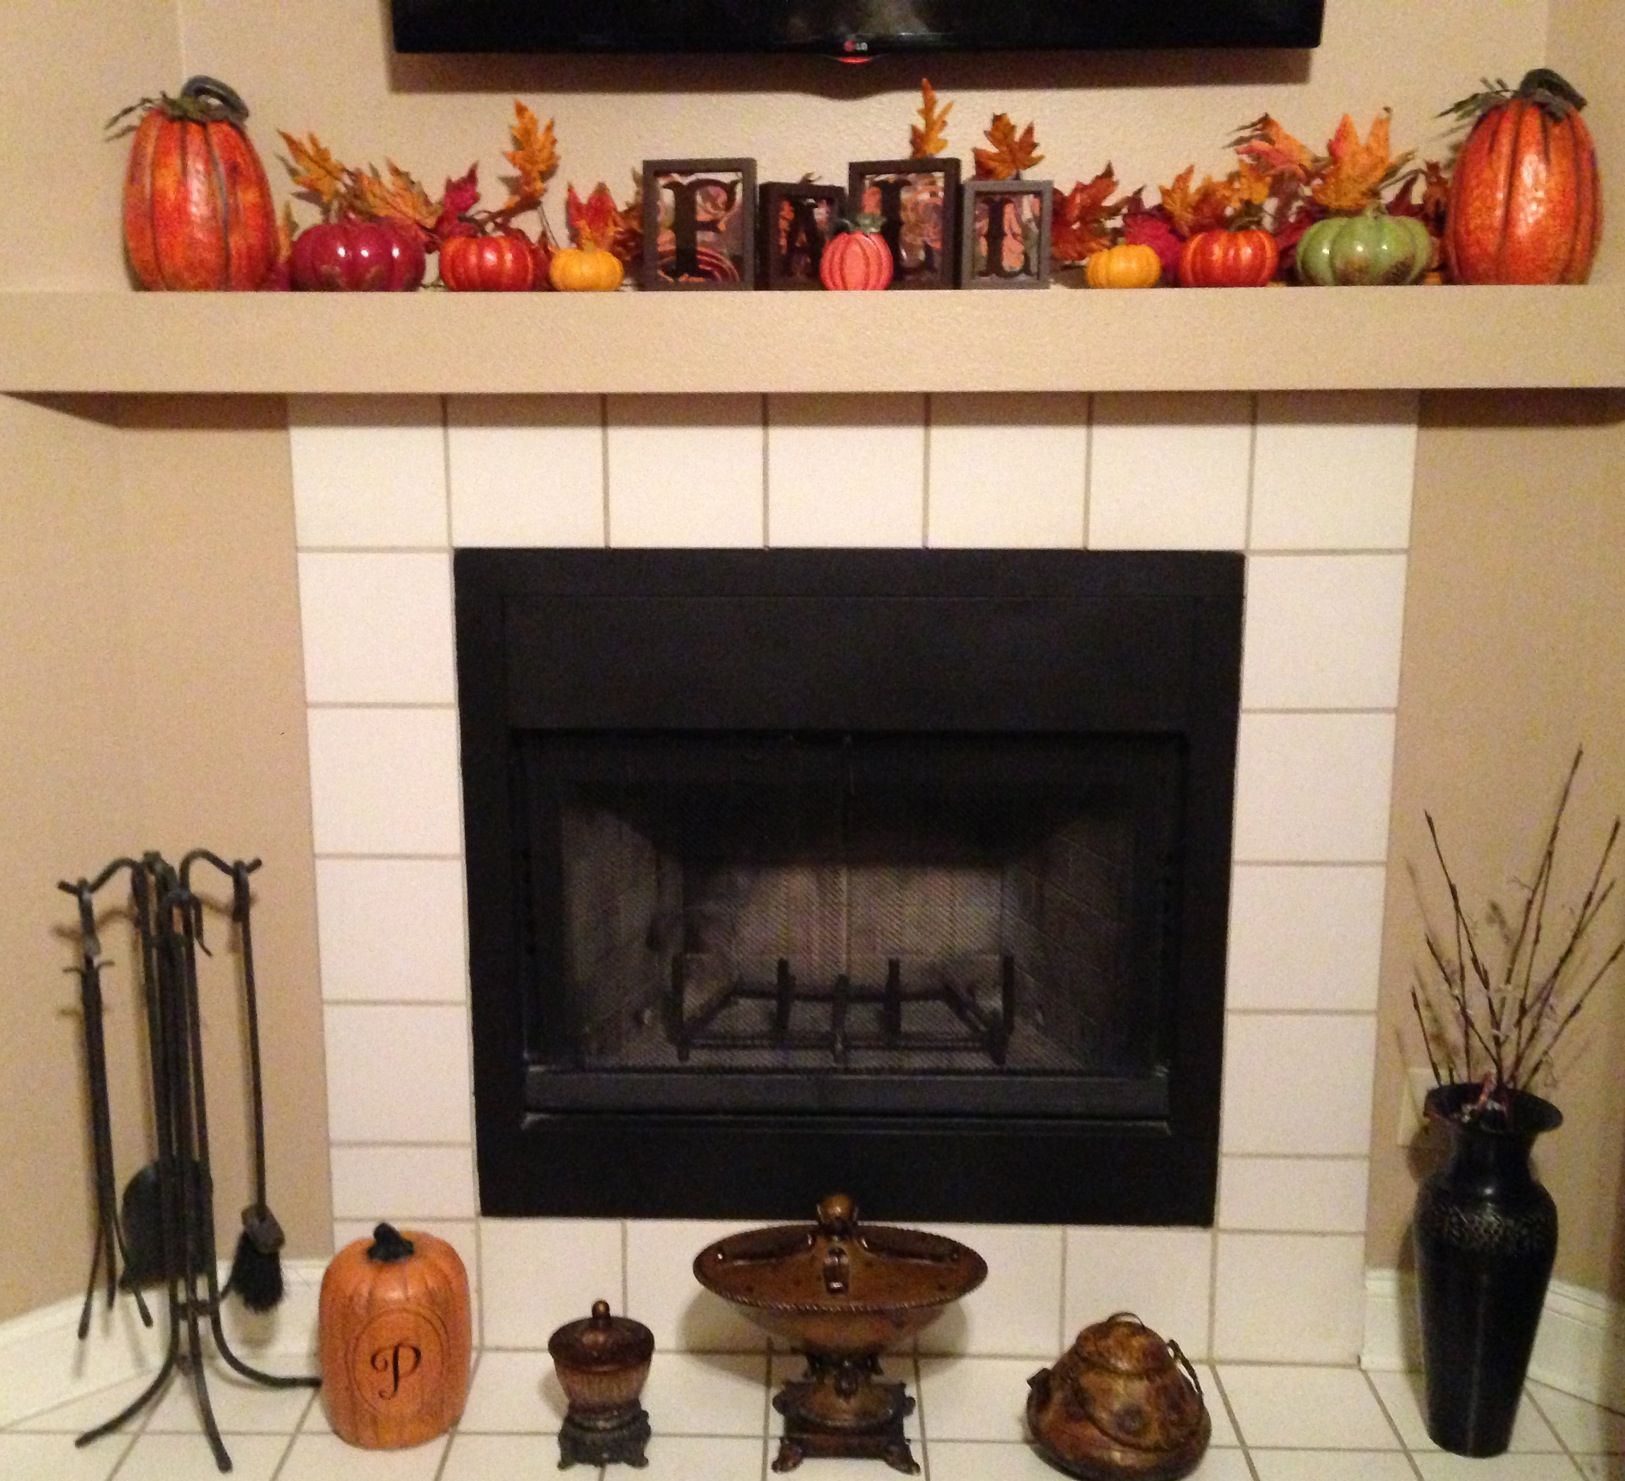 We are ready for Fall